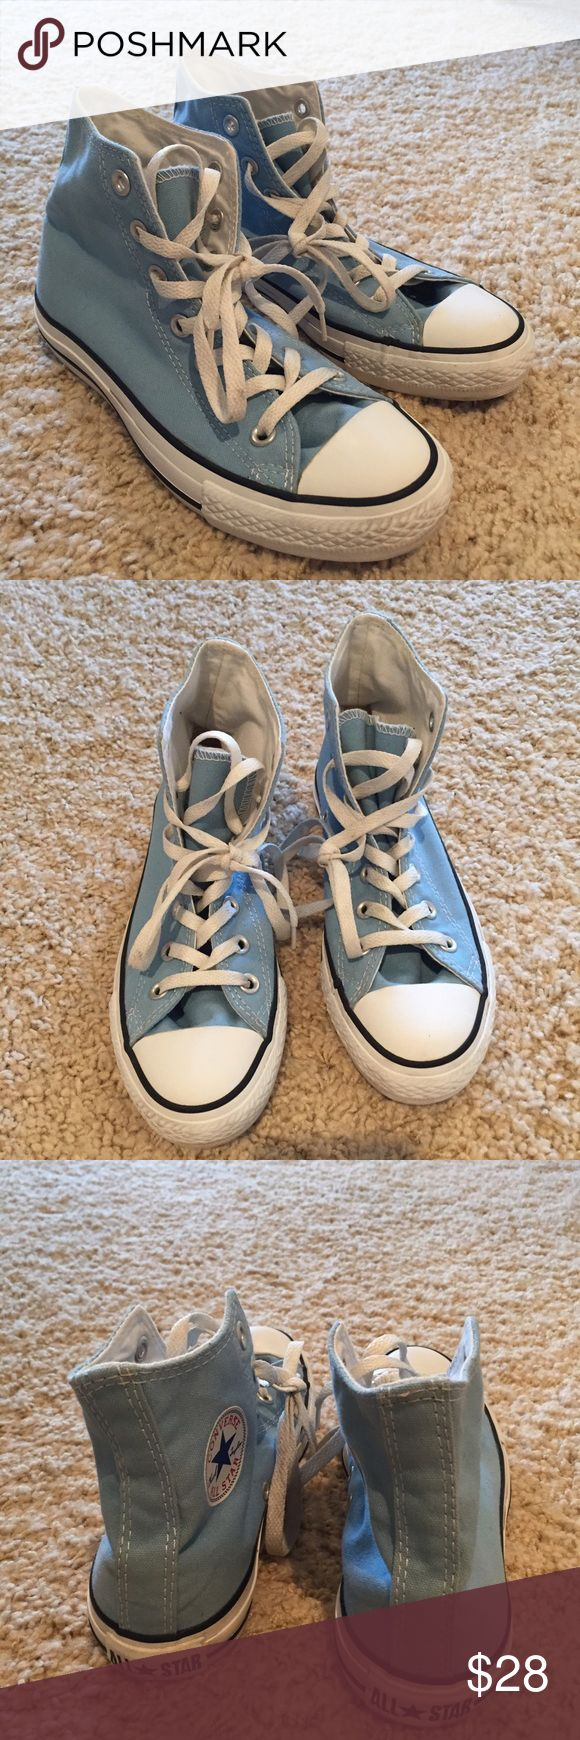 Baby blue Converse high tops size 6 Practically new! These are Converse high tops in a baby blue. Soooo cute but I just can't make them fit. Worn probably 3 times total. Comment any questions  Converse Shoes Sneakers